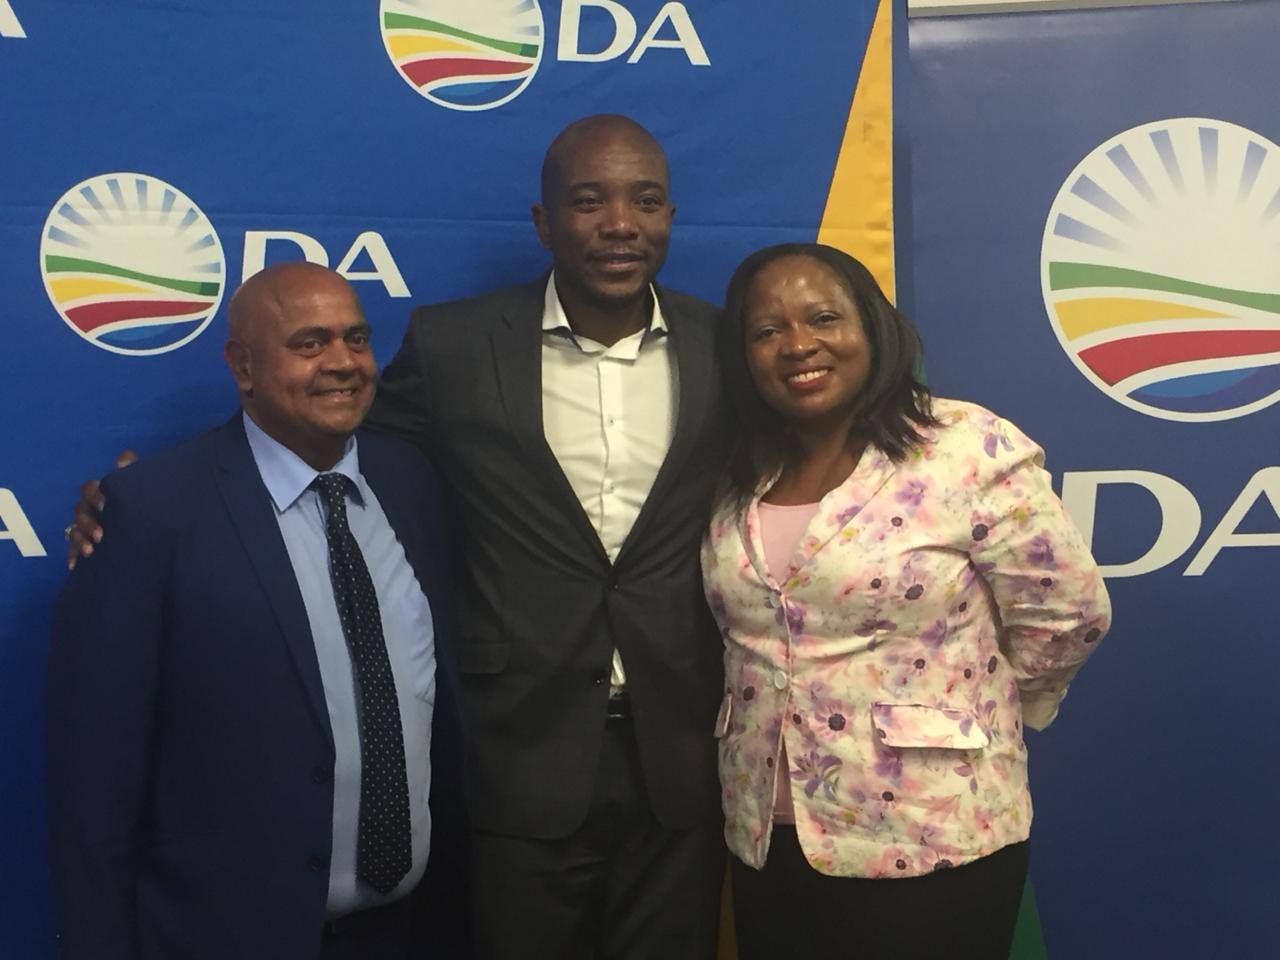 Sithole and McGluwa to lead DA campaign for change in Mpumalanga and North West